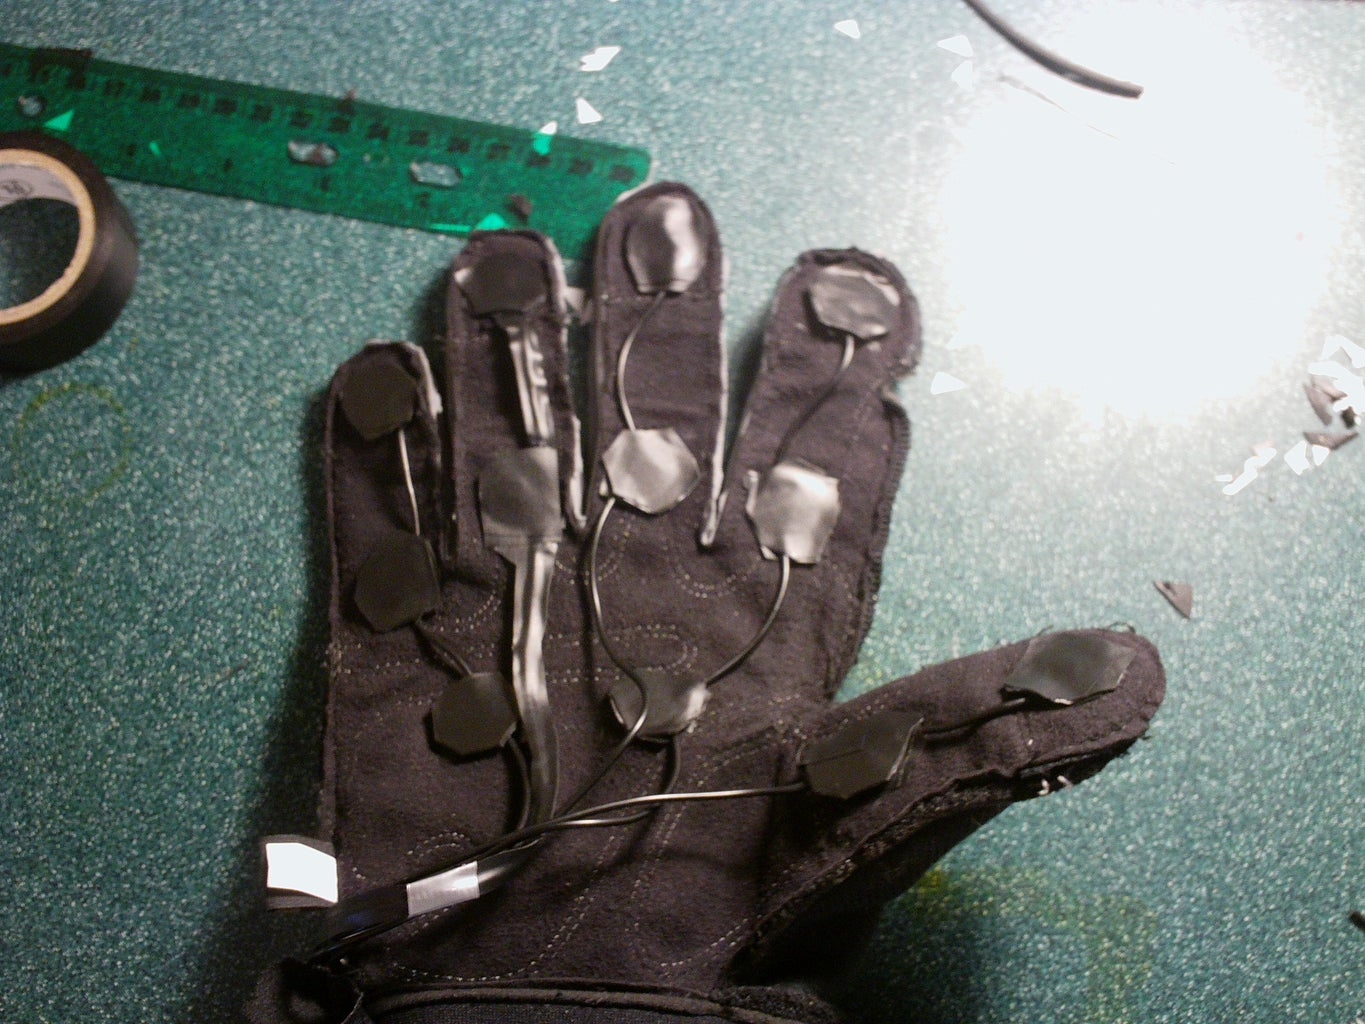 Insulate the Inside of Your Glove